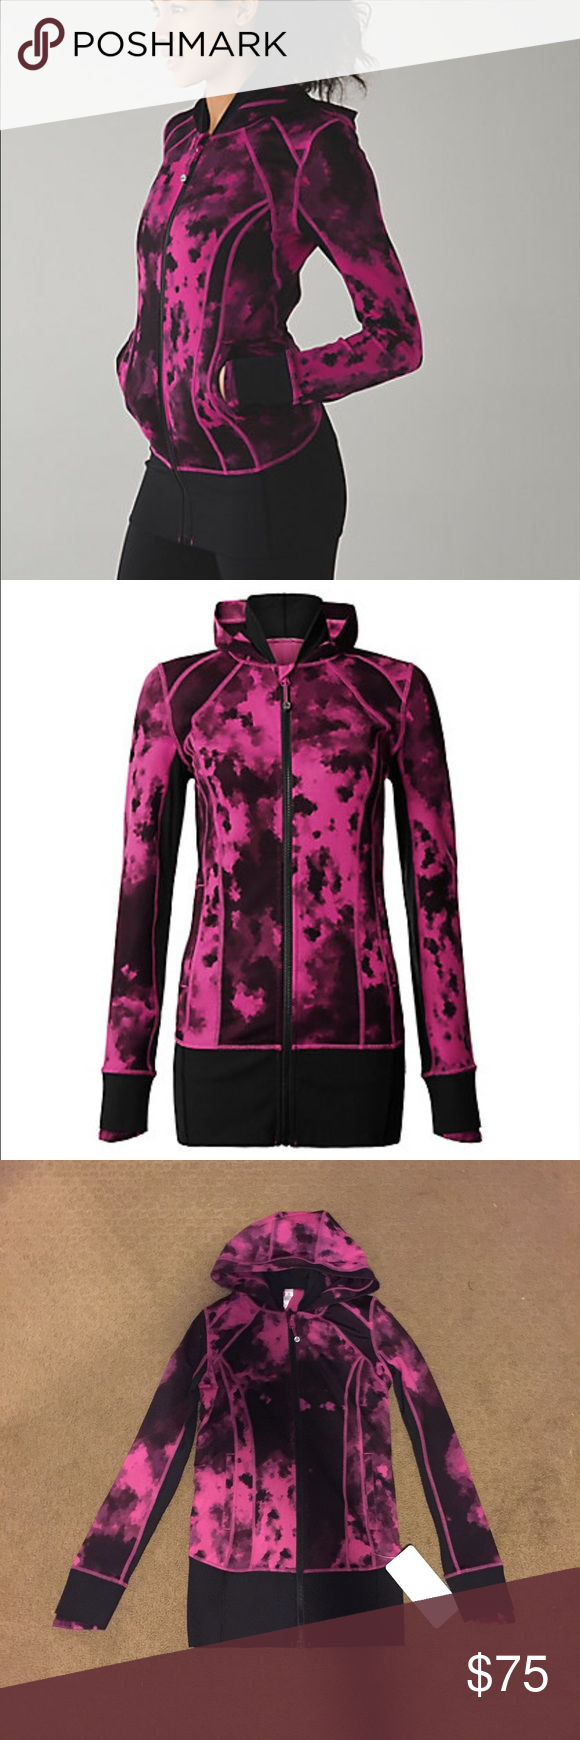 Lululemon Daily Practice Jacket Lululemon Daily Practice Jacket, Size 4, Brand New With Tags, Colors are Black and A Purple/Pink Color, Marled Print, Thick Waistband, Cheaper on Ⓜ️ercari lululemon athletica Jackets & Coats